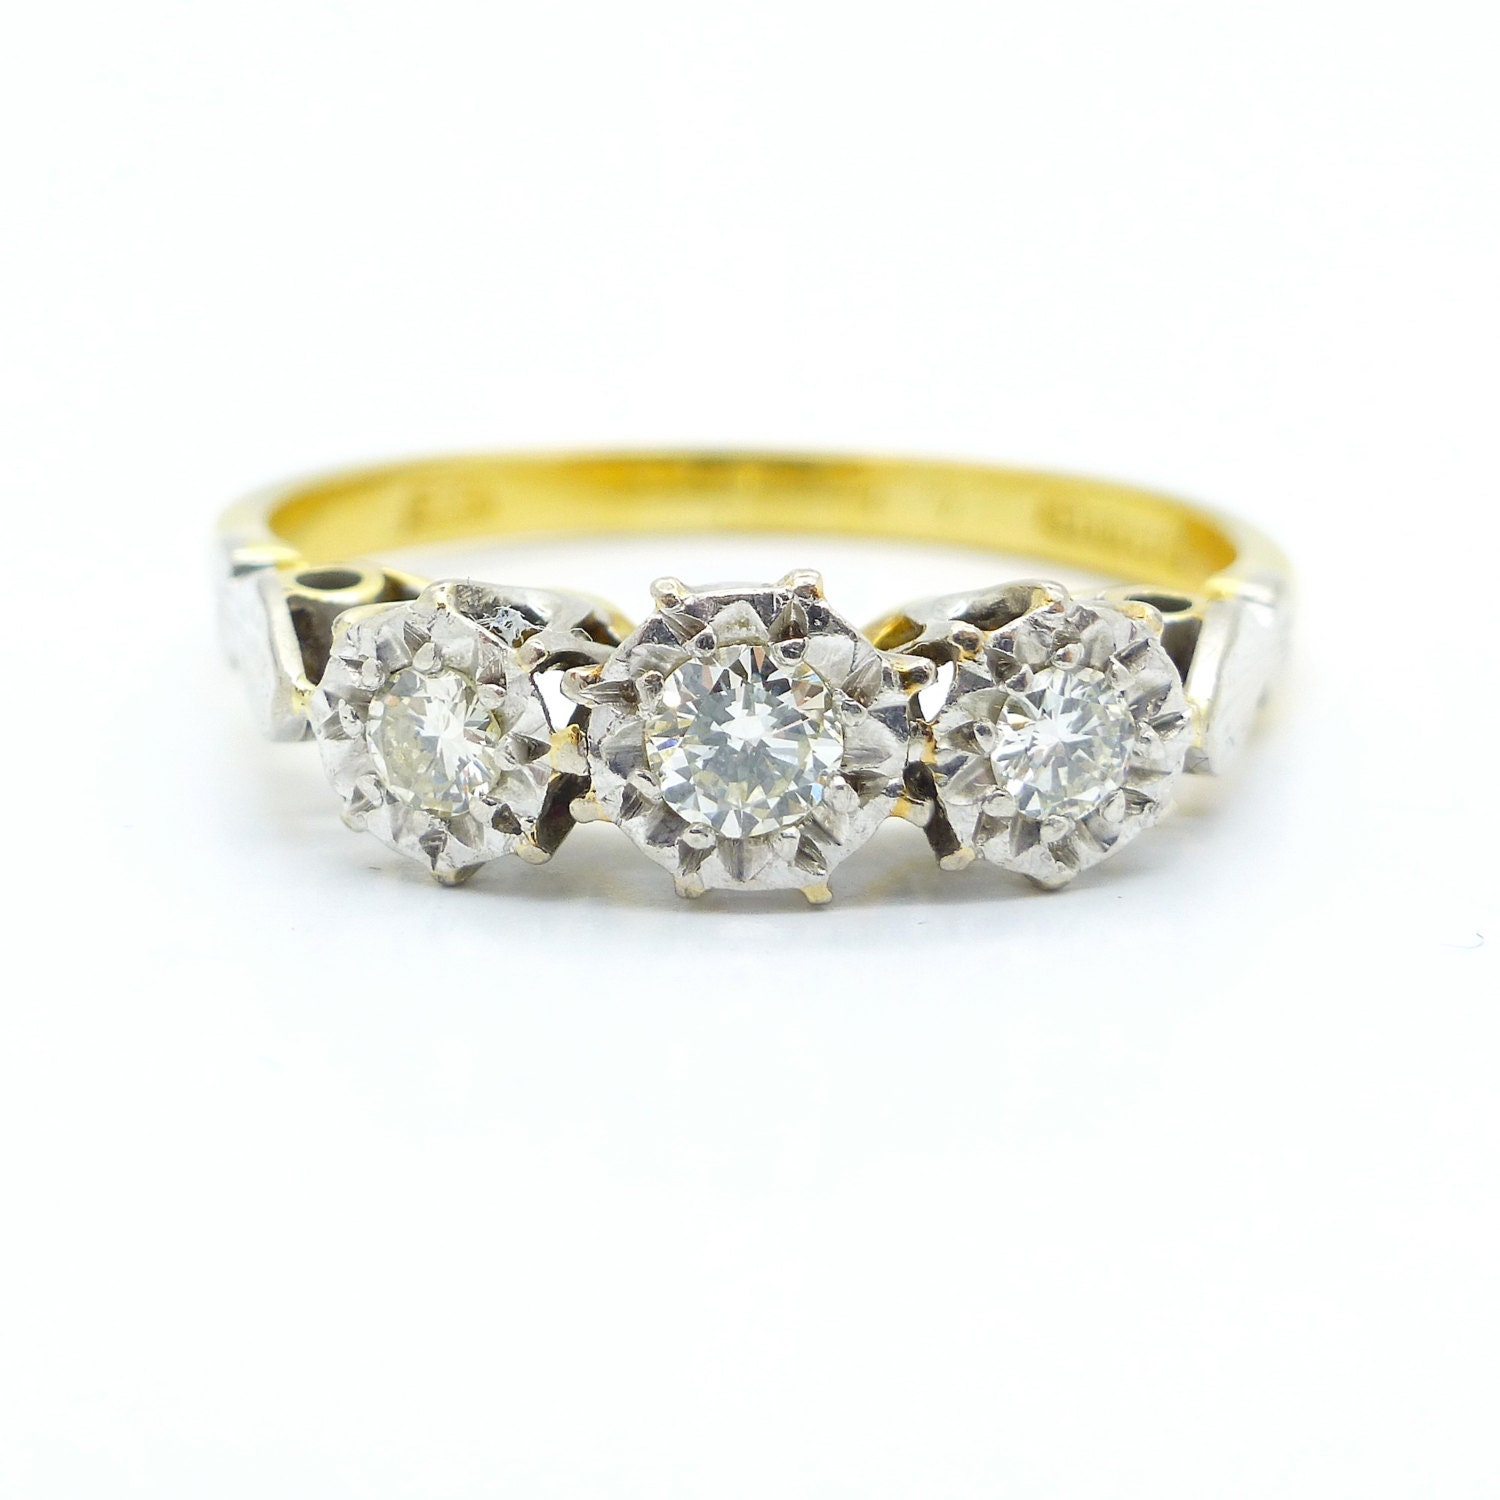 Vintage engagement ring 18ct 18k Antique three stone diamond